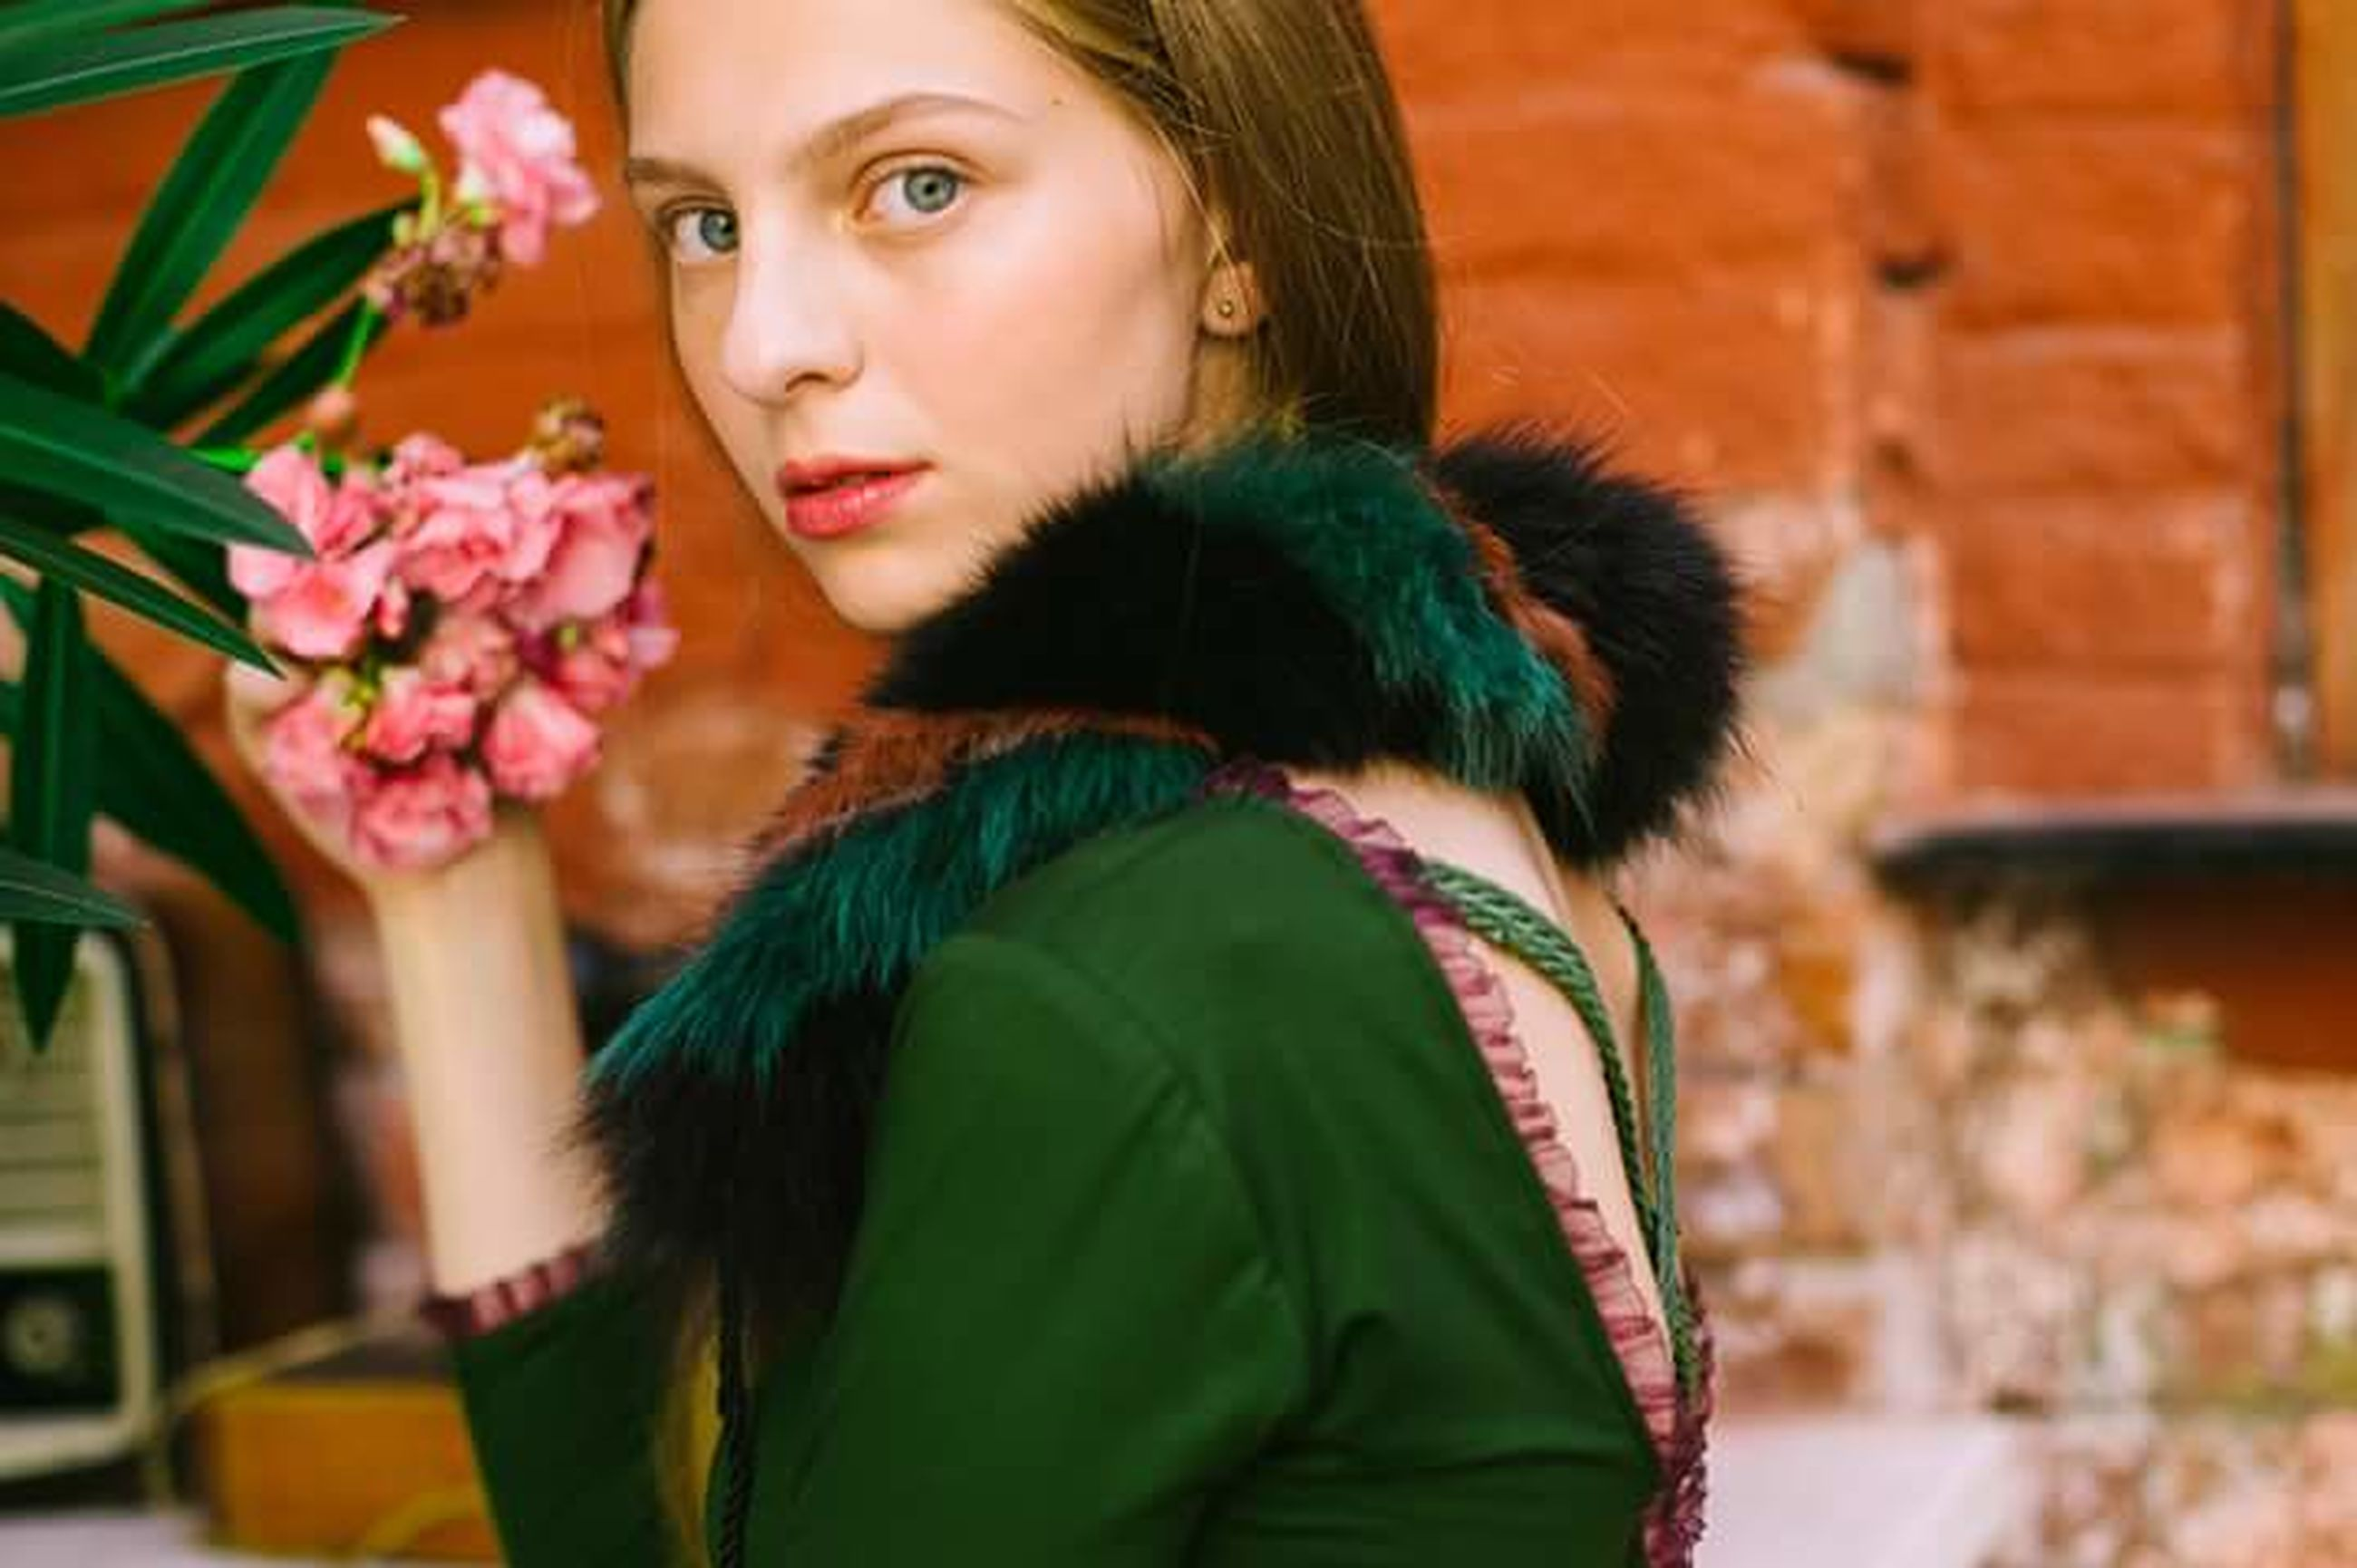 flower, only women, headshot, adults only, adult, beauty, one person, people, one woman only, portrait, outdoors, beautiful woman, fragility, women, nature, young adult, day, beauty in nature, close-up, freshness